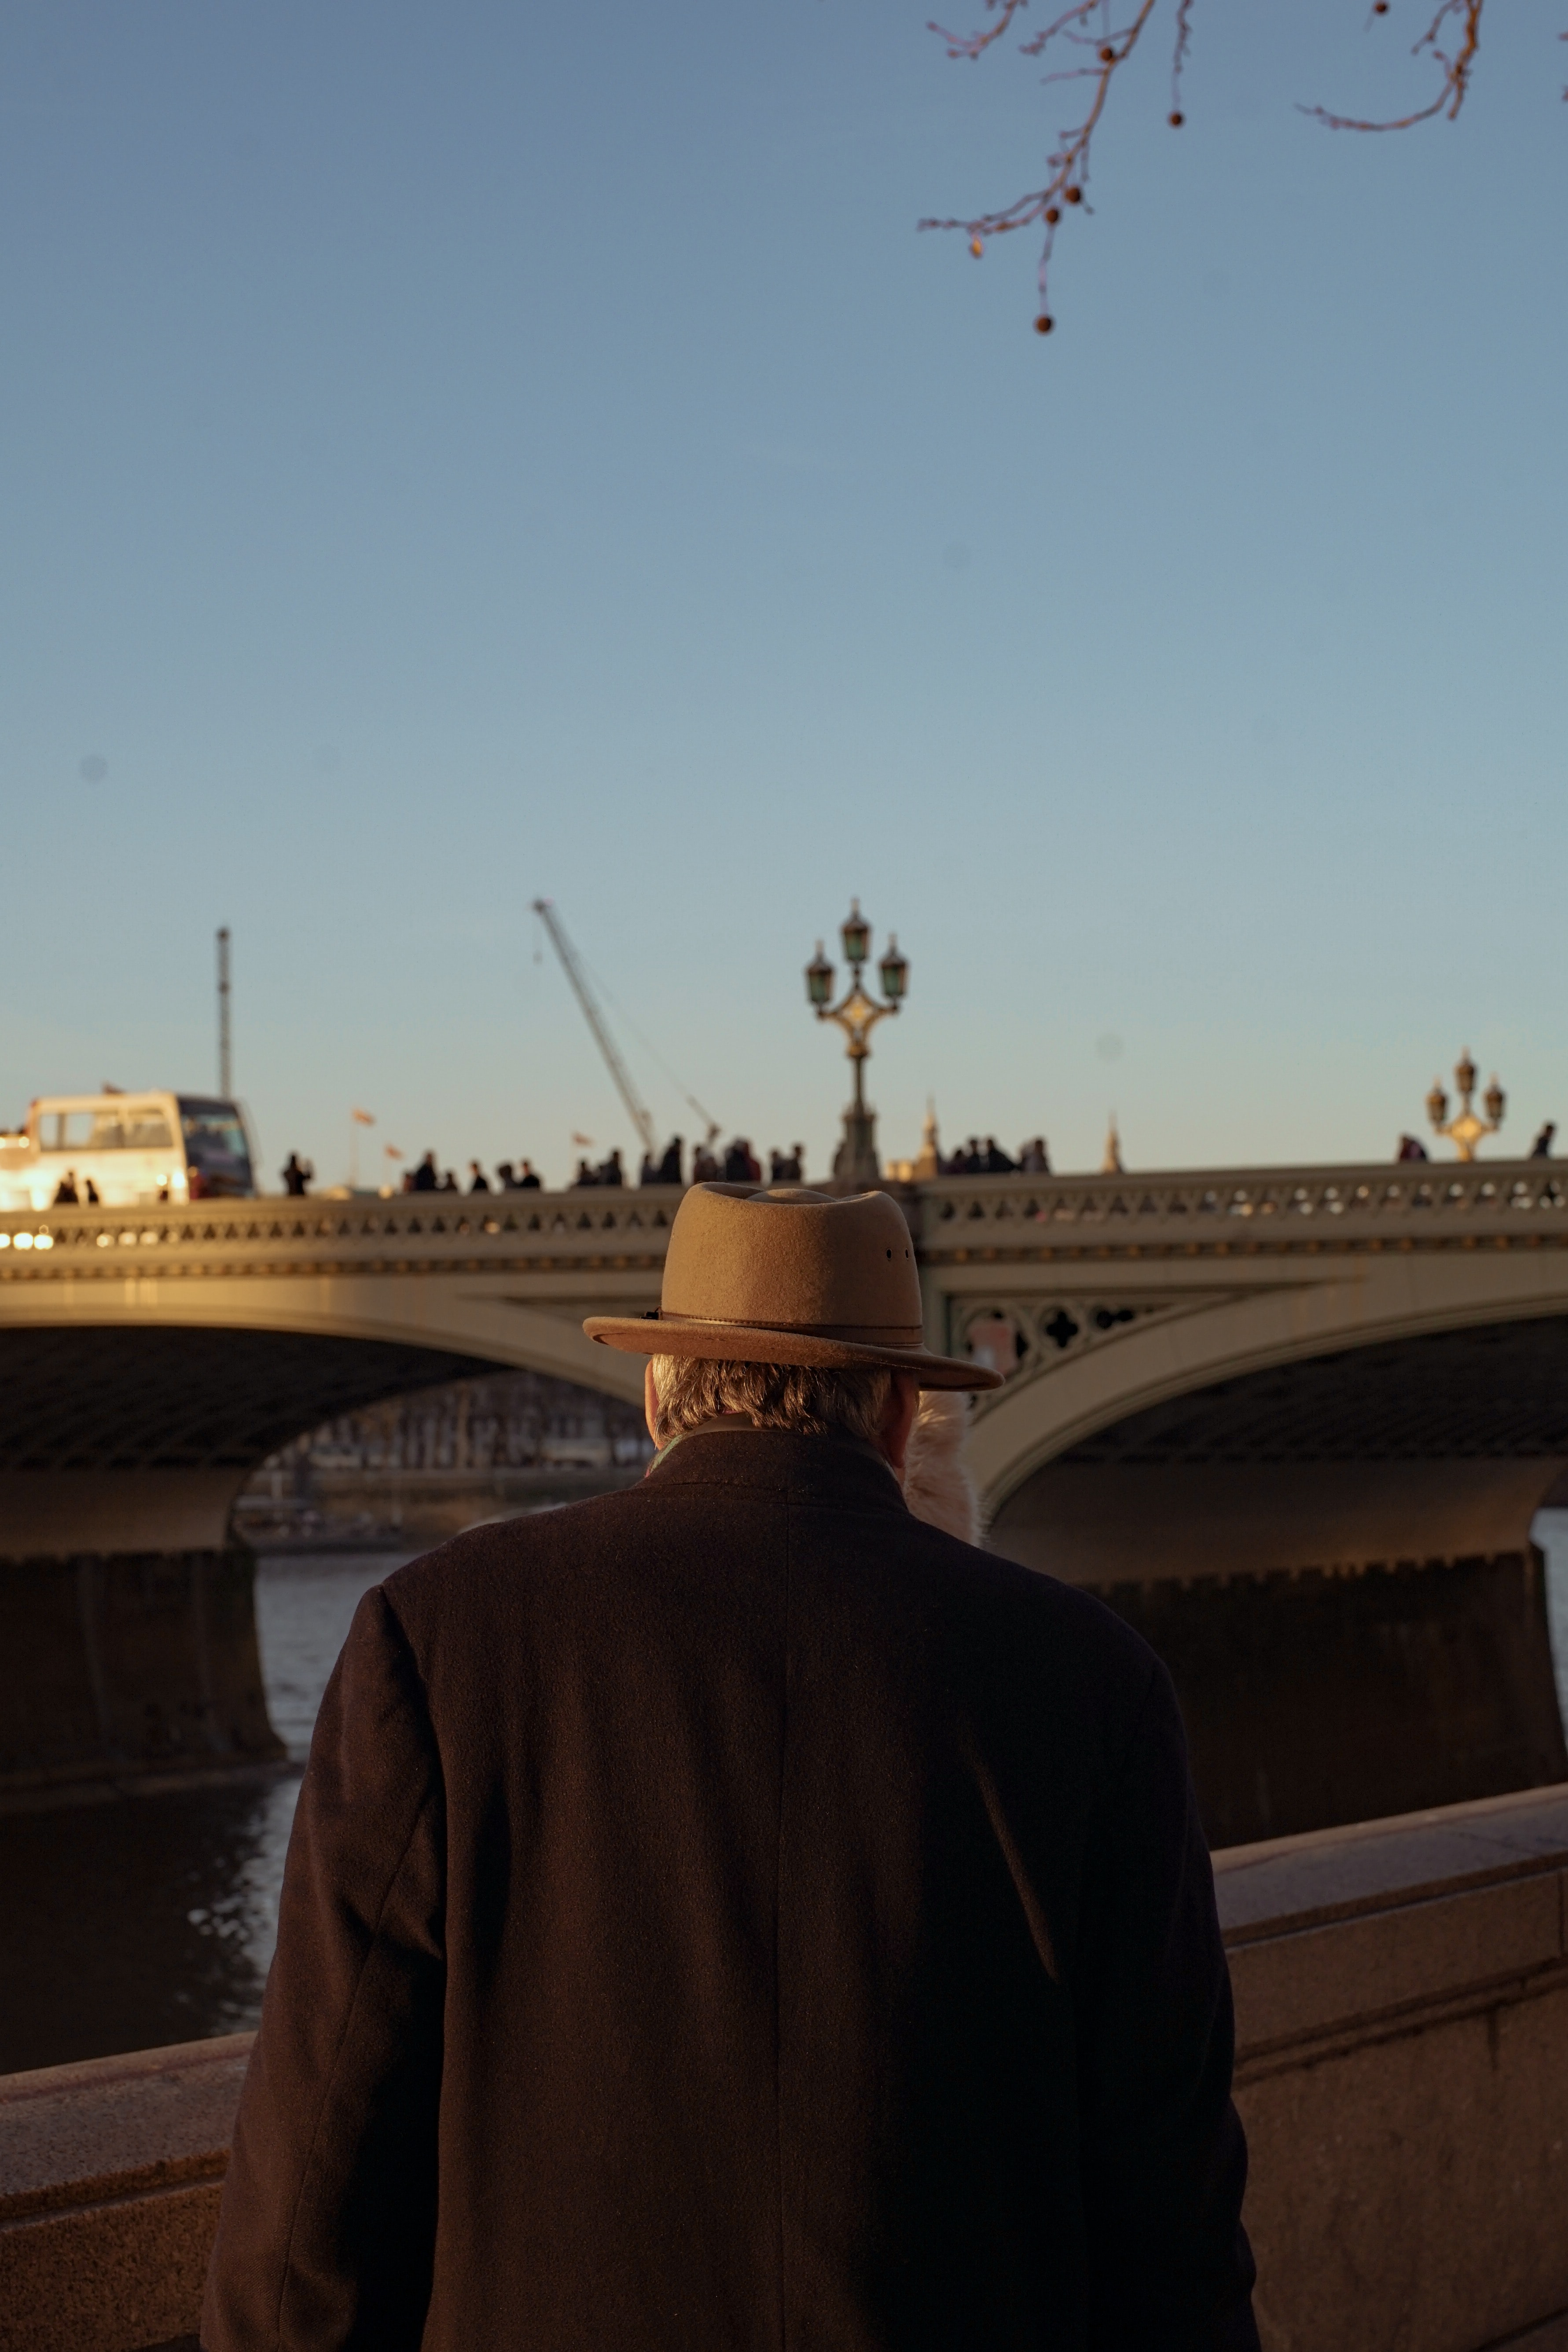 man standing in front of white bridge